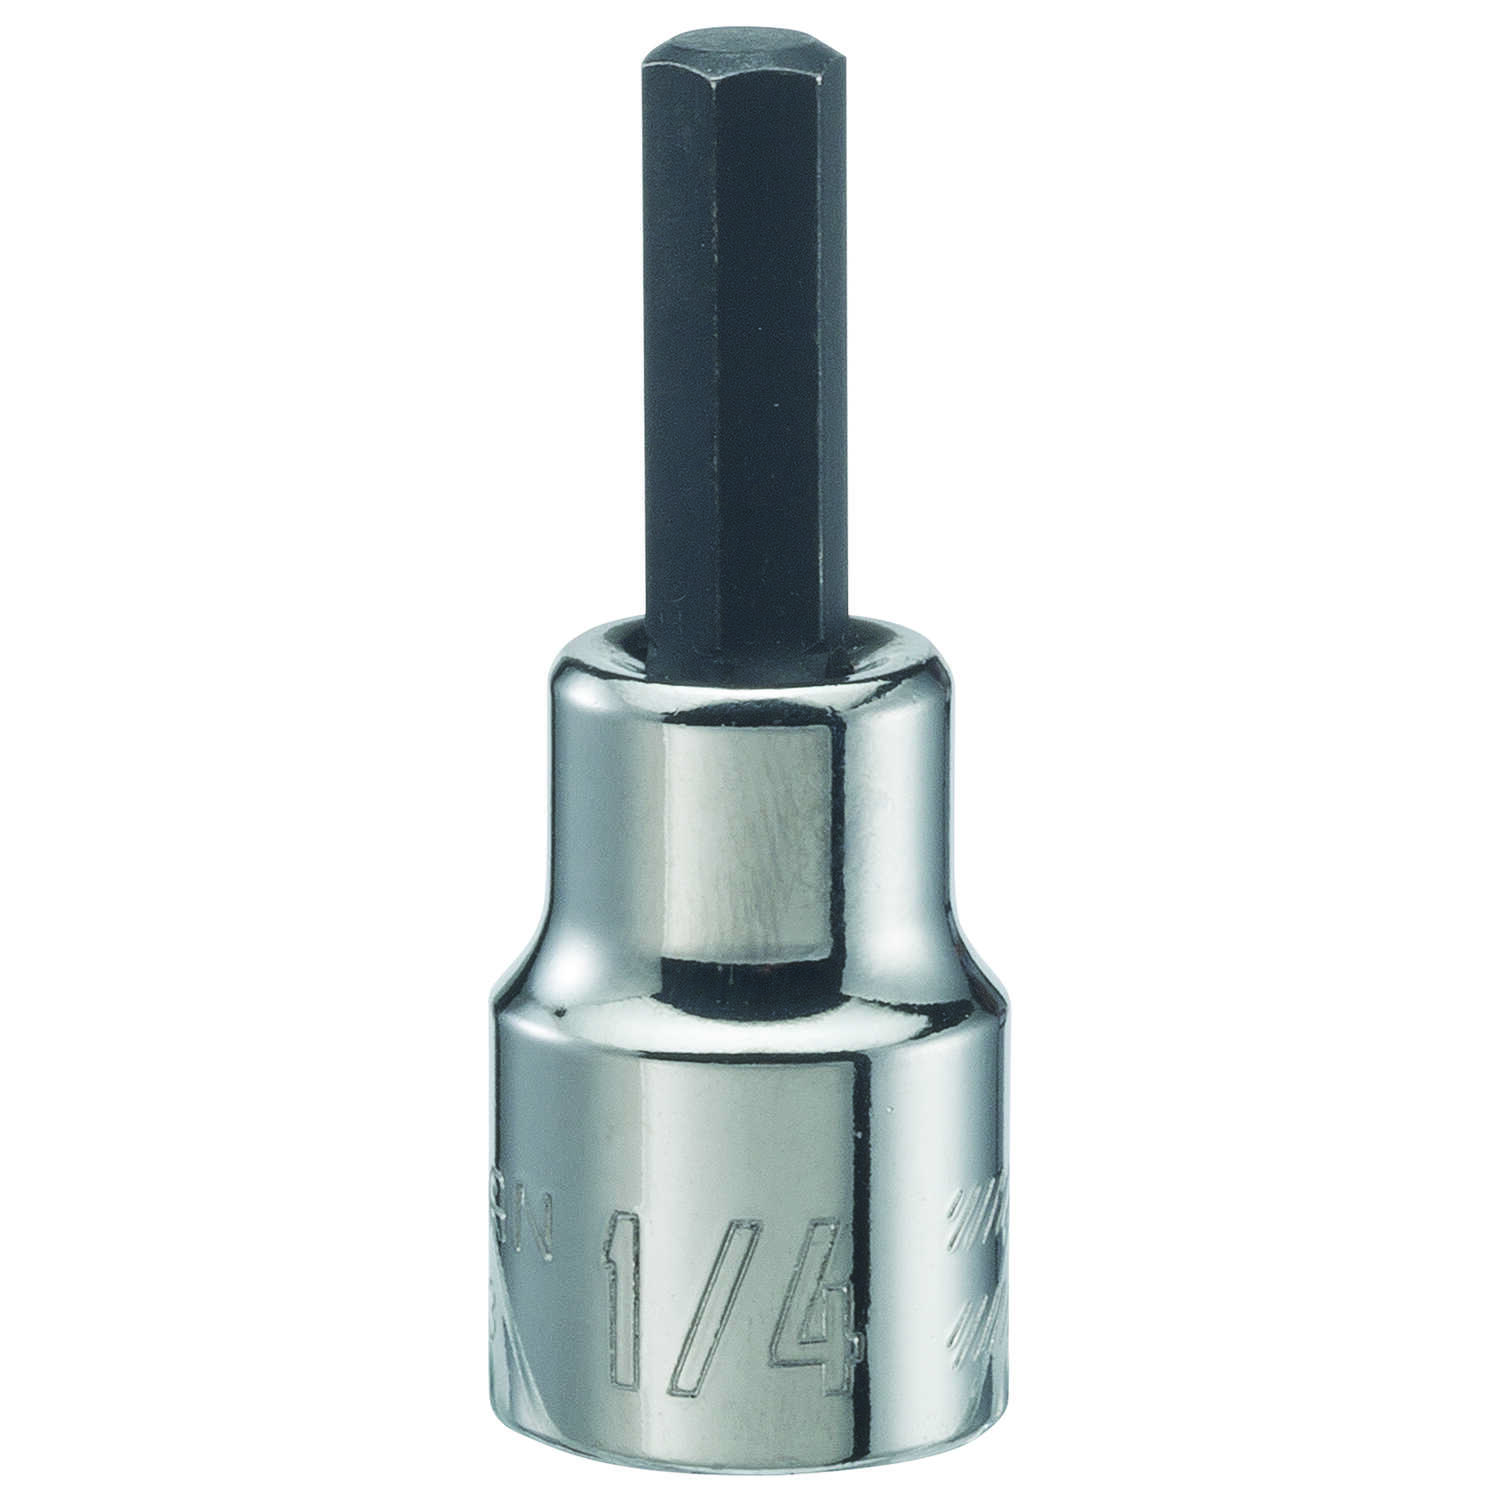 Craftsman  1/4 in.  x 3/8 in. drive  SAE  6 Point Standard  Hex Bit Socket  1 pc.